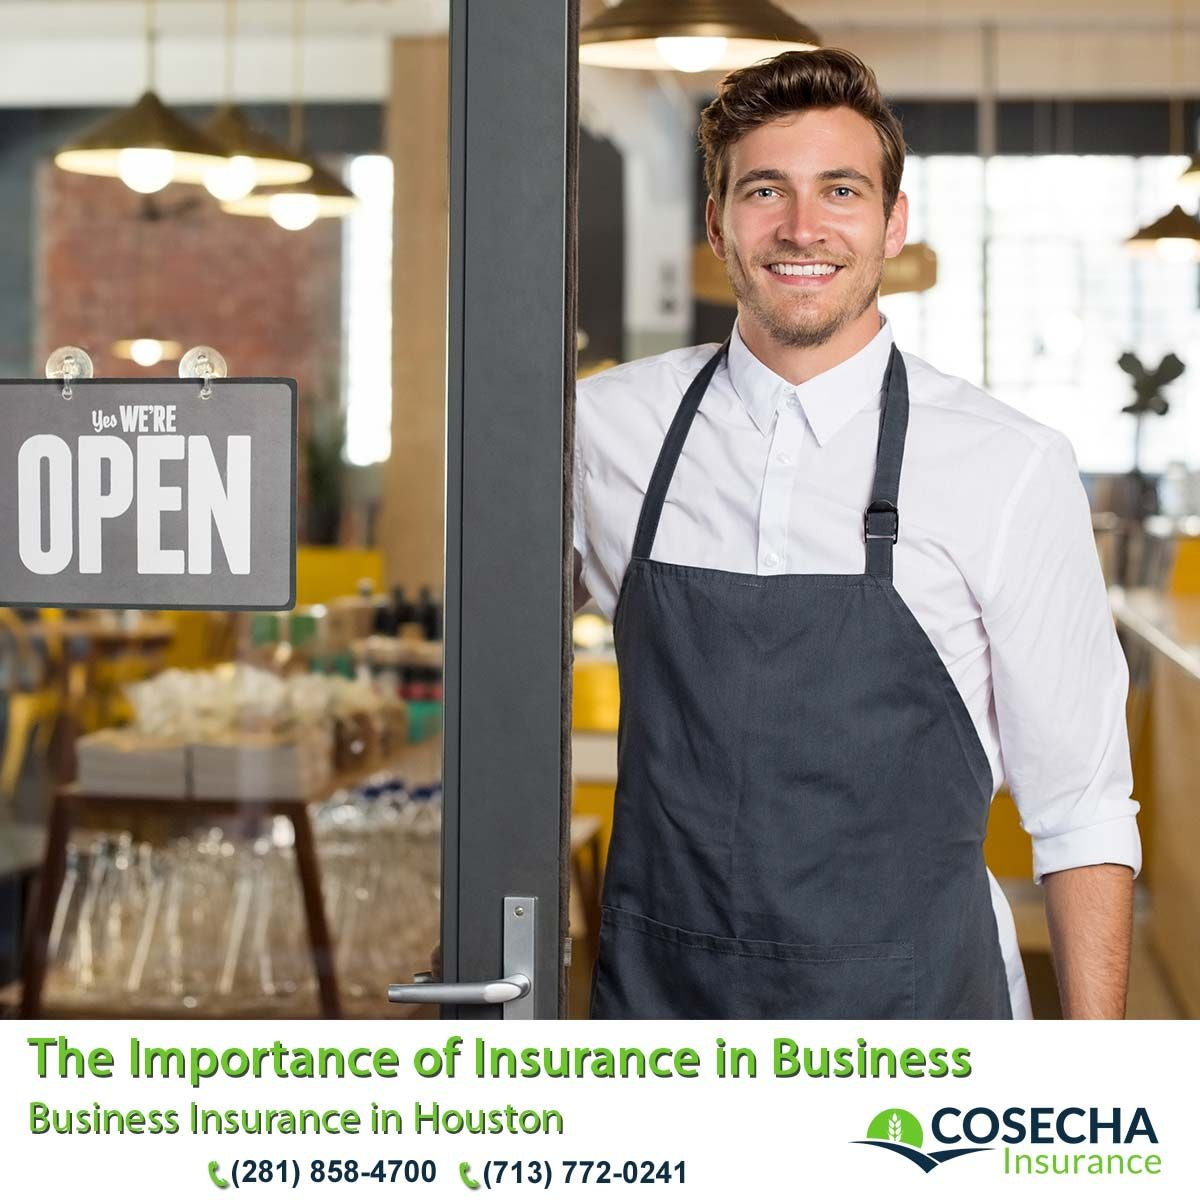 The Importance of Insurance in BusinessBusiness